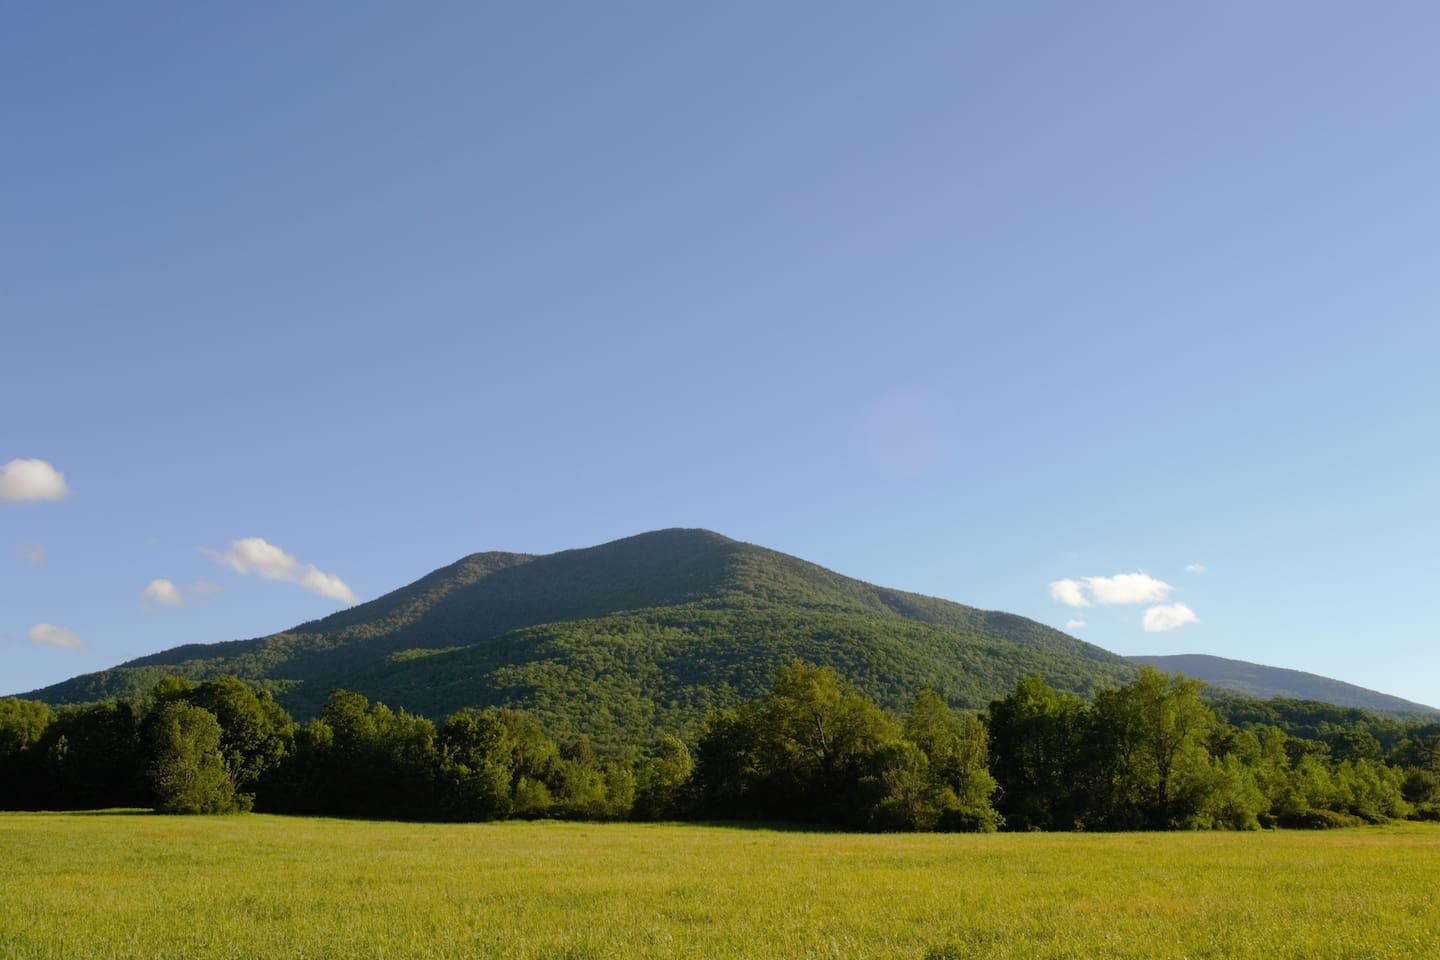 There are great views of Mount Dorset from all over the grounds